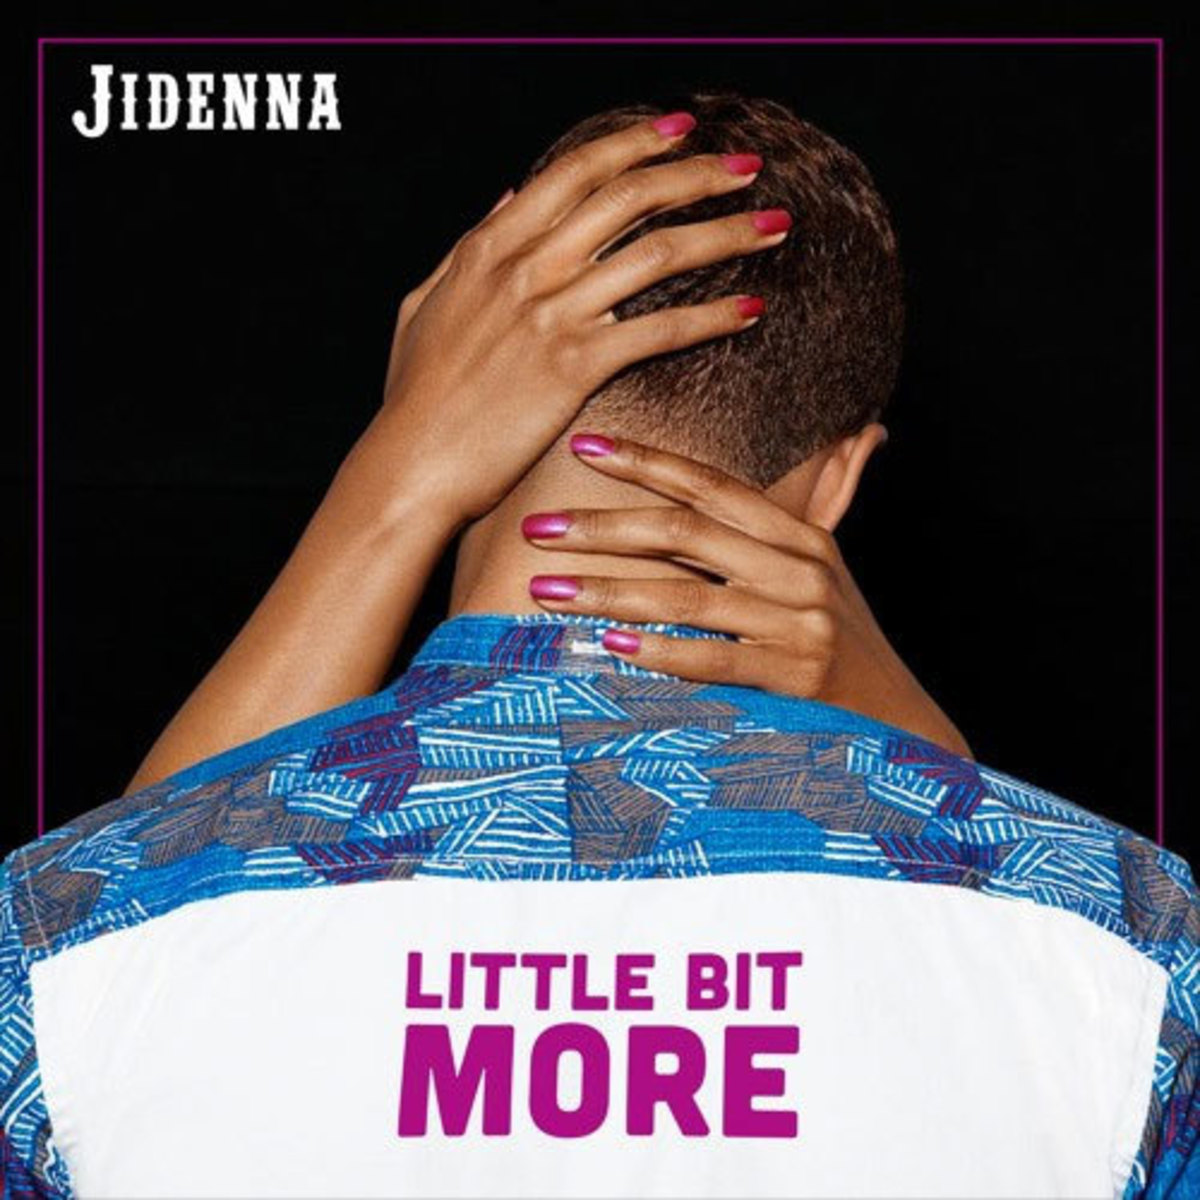 jidenna-little-bit-more.jpg